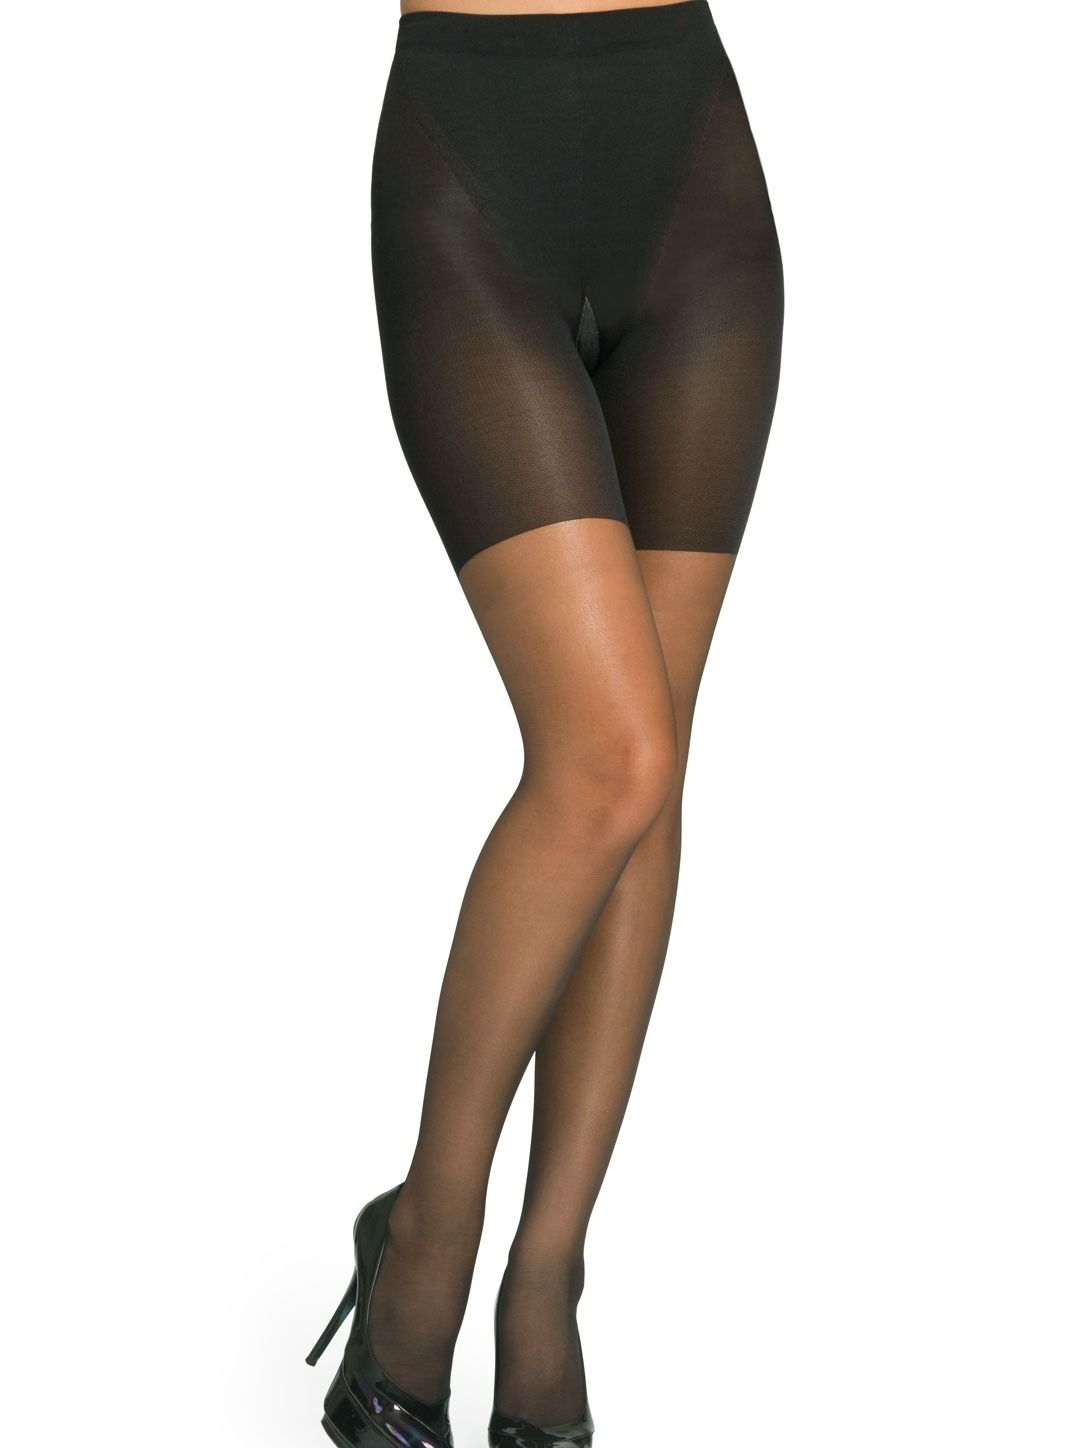 Spanx By Sara Blakely NEW Black Womens Size D Super Shaping Sheer Pantyhose #004